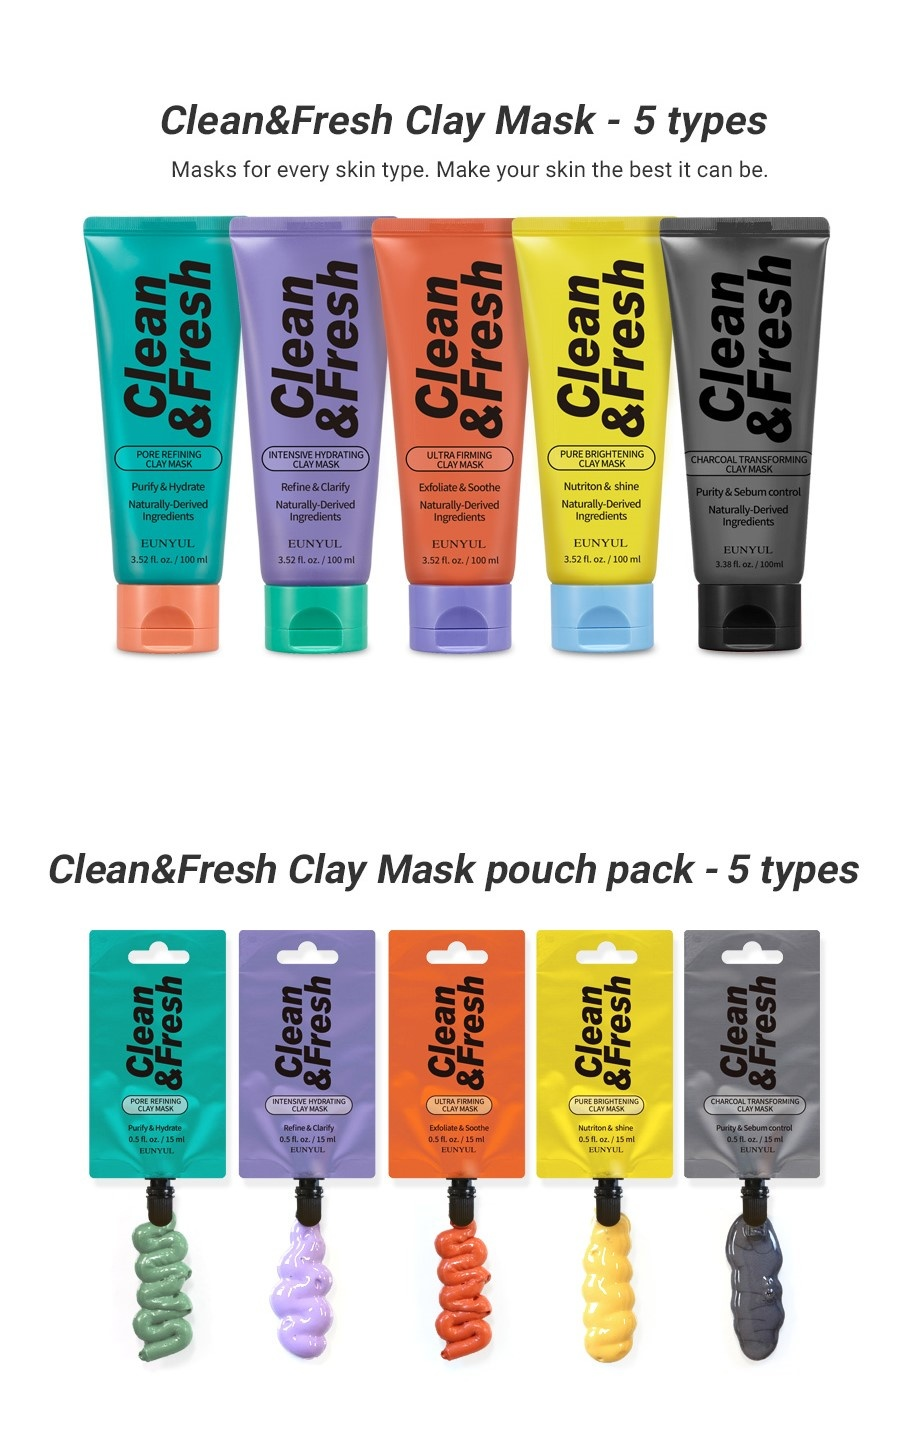 Clean & Fresh Clay Mask Pouch Pack - Pore Refining-5